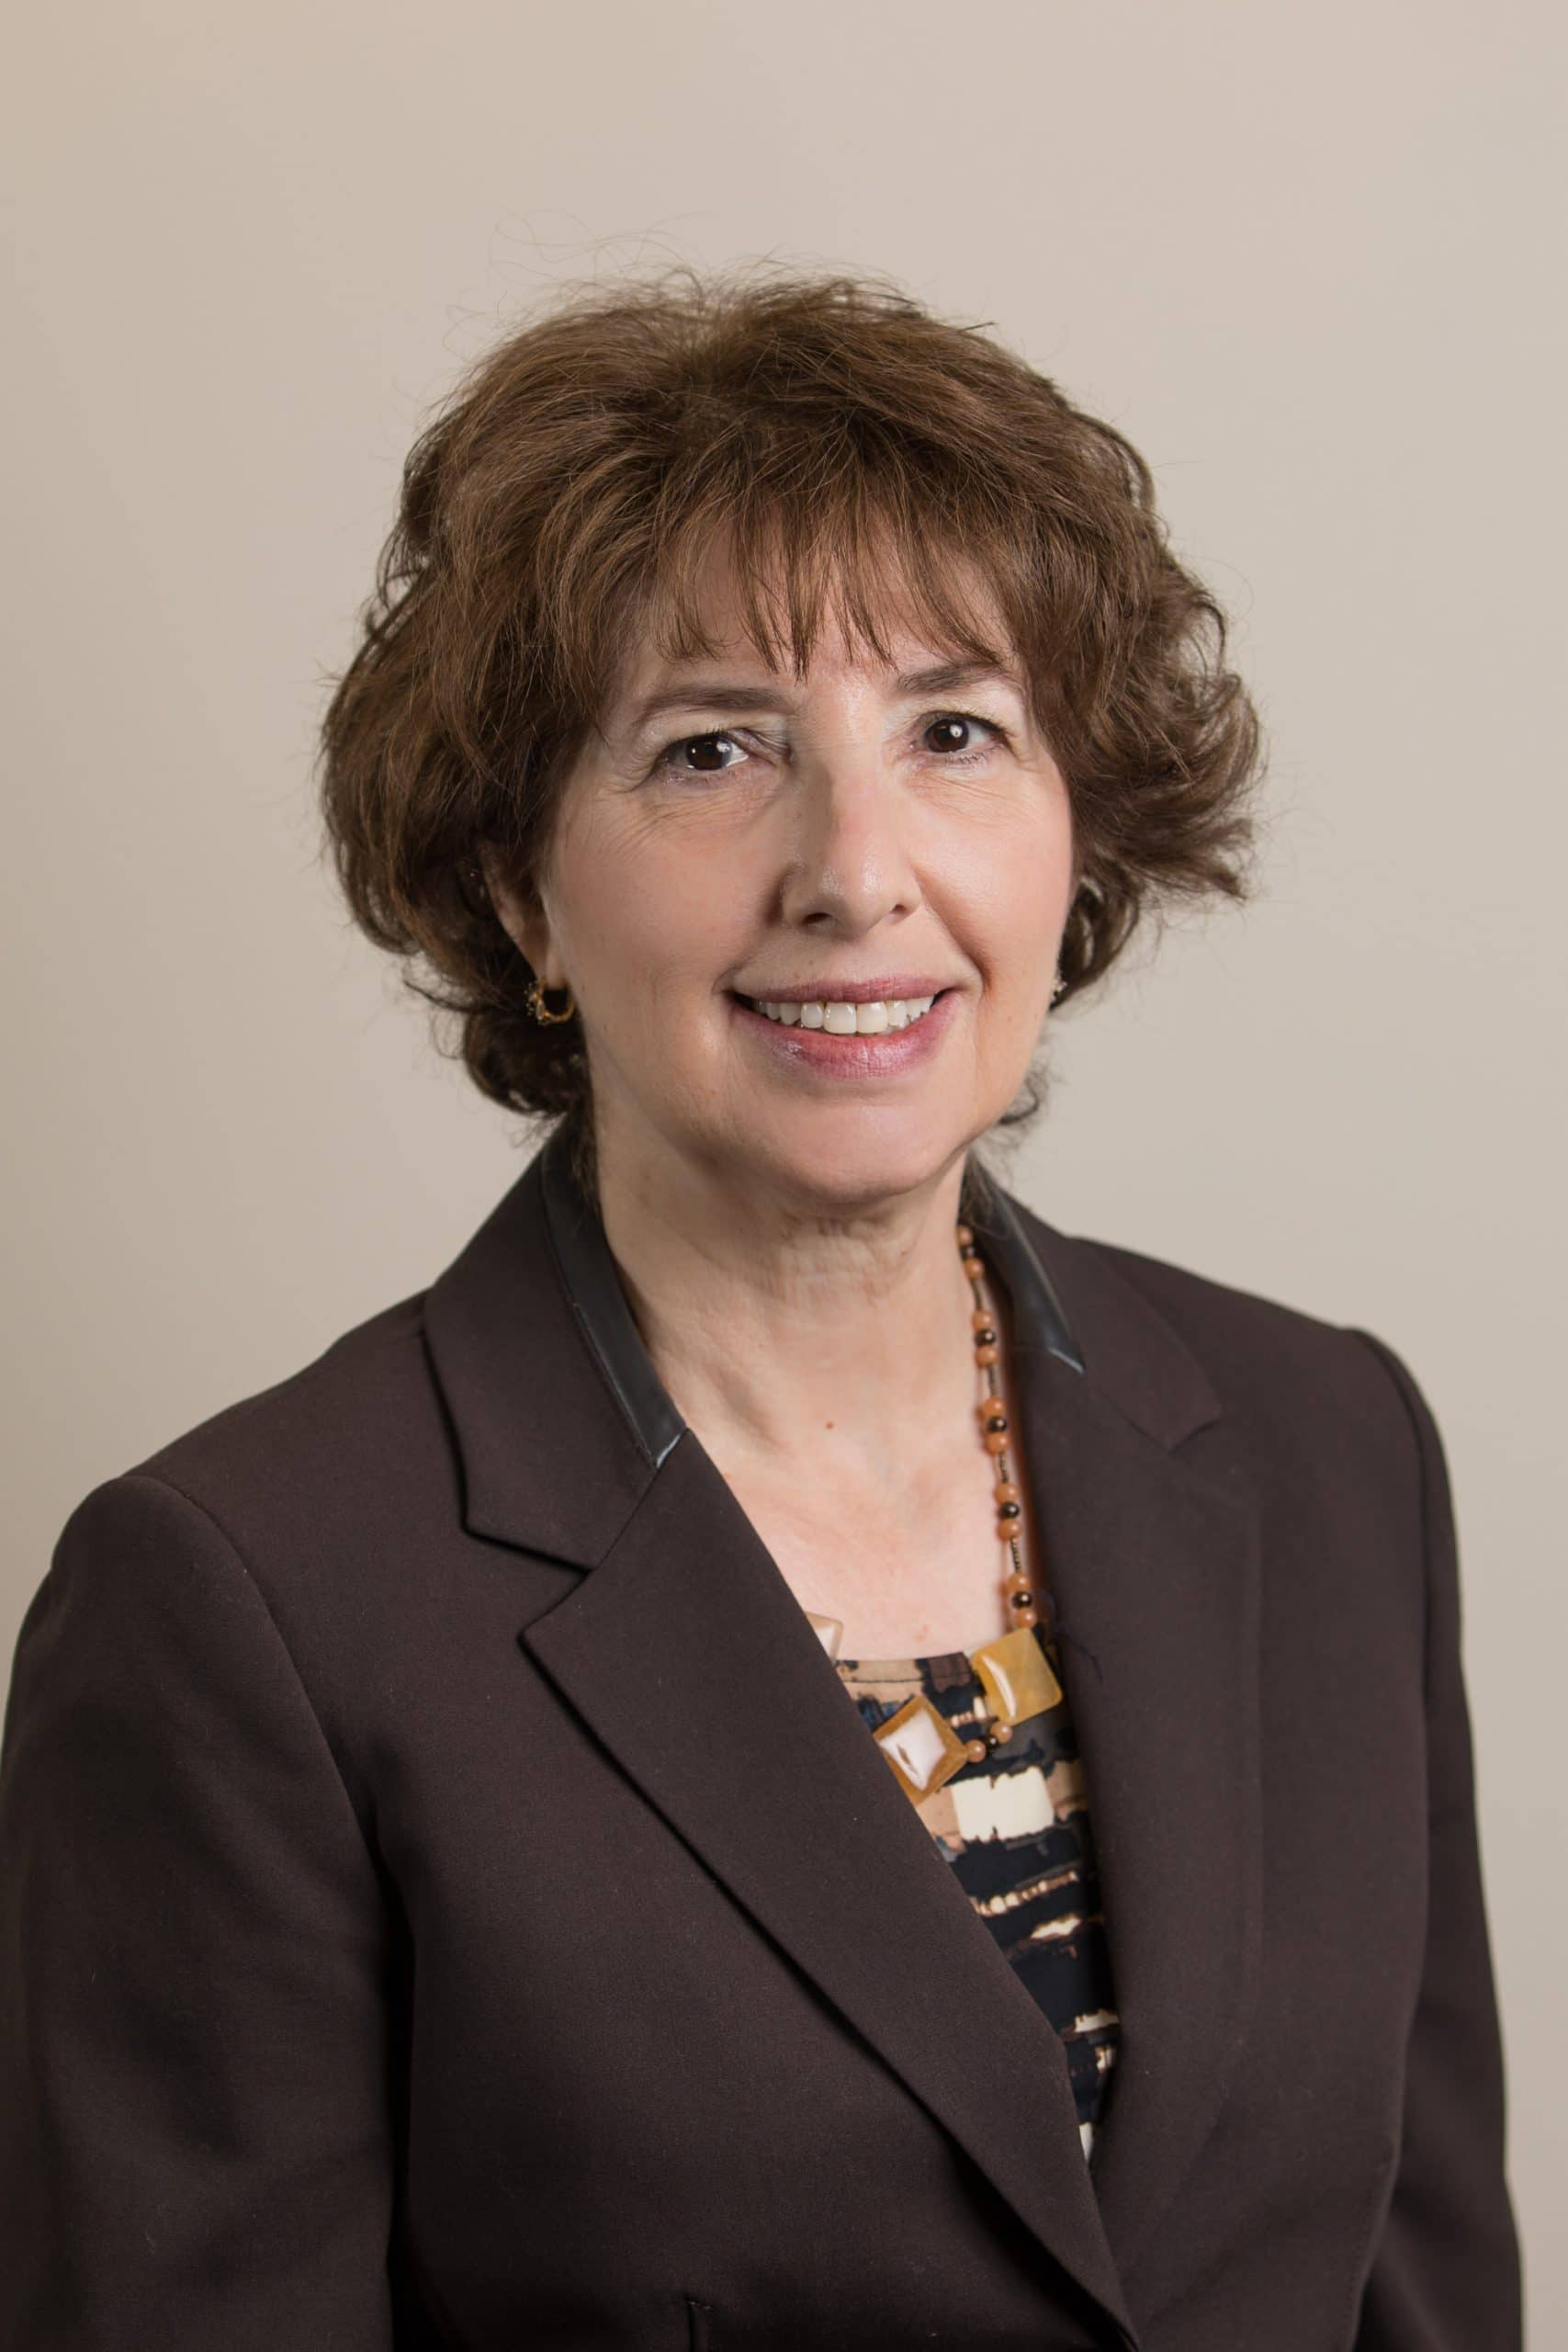 Adrienne L. Isacoff to Speak on Construction Law